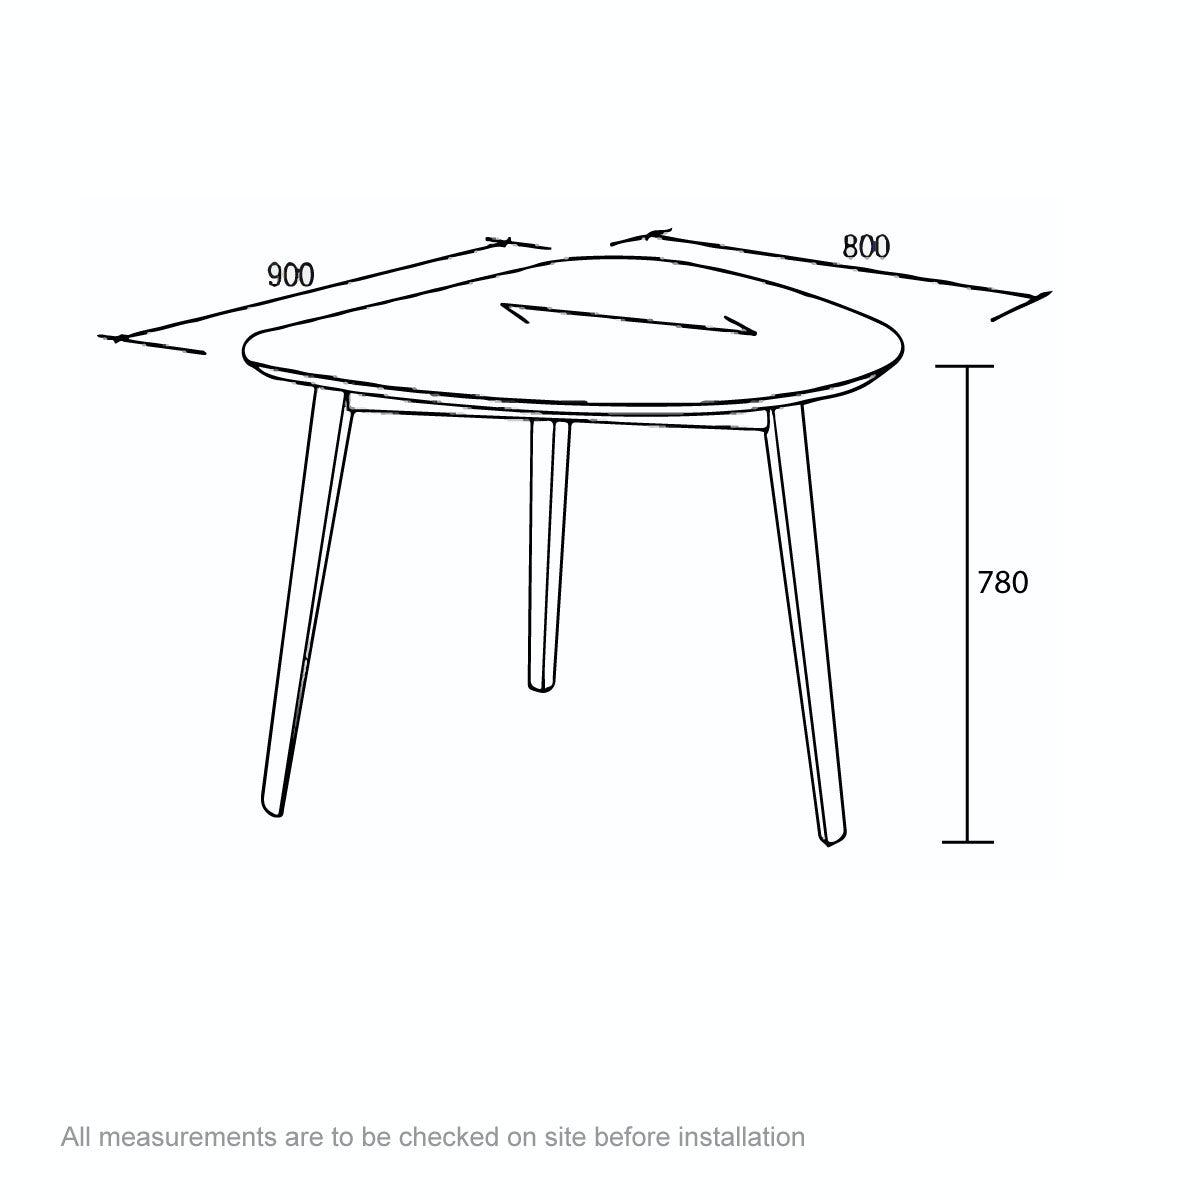 Dimensions for Ernest oak apartment table